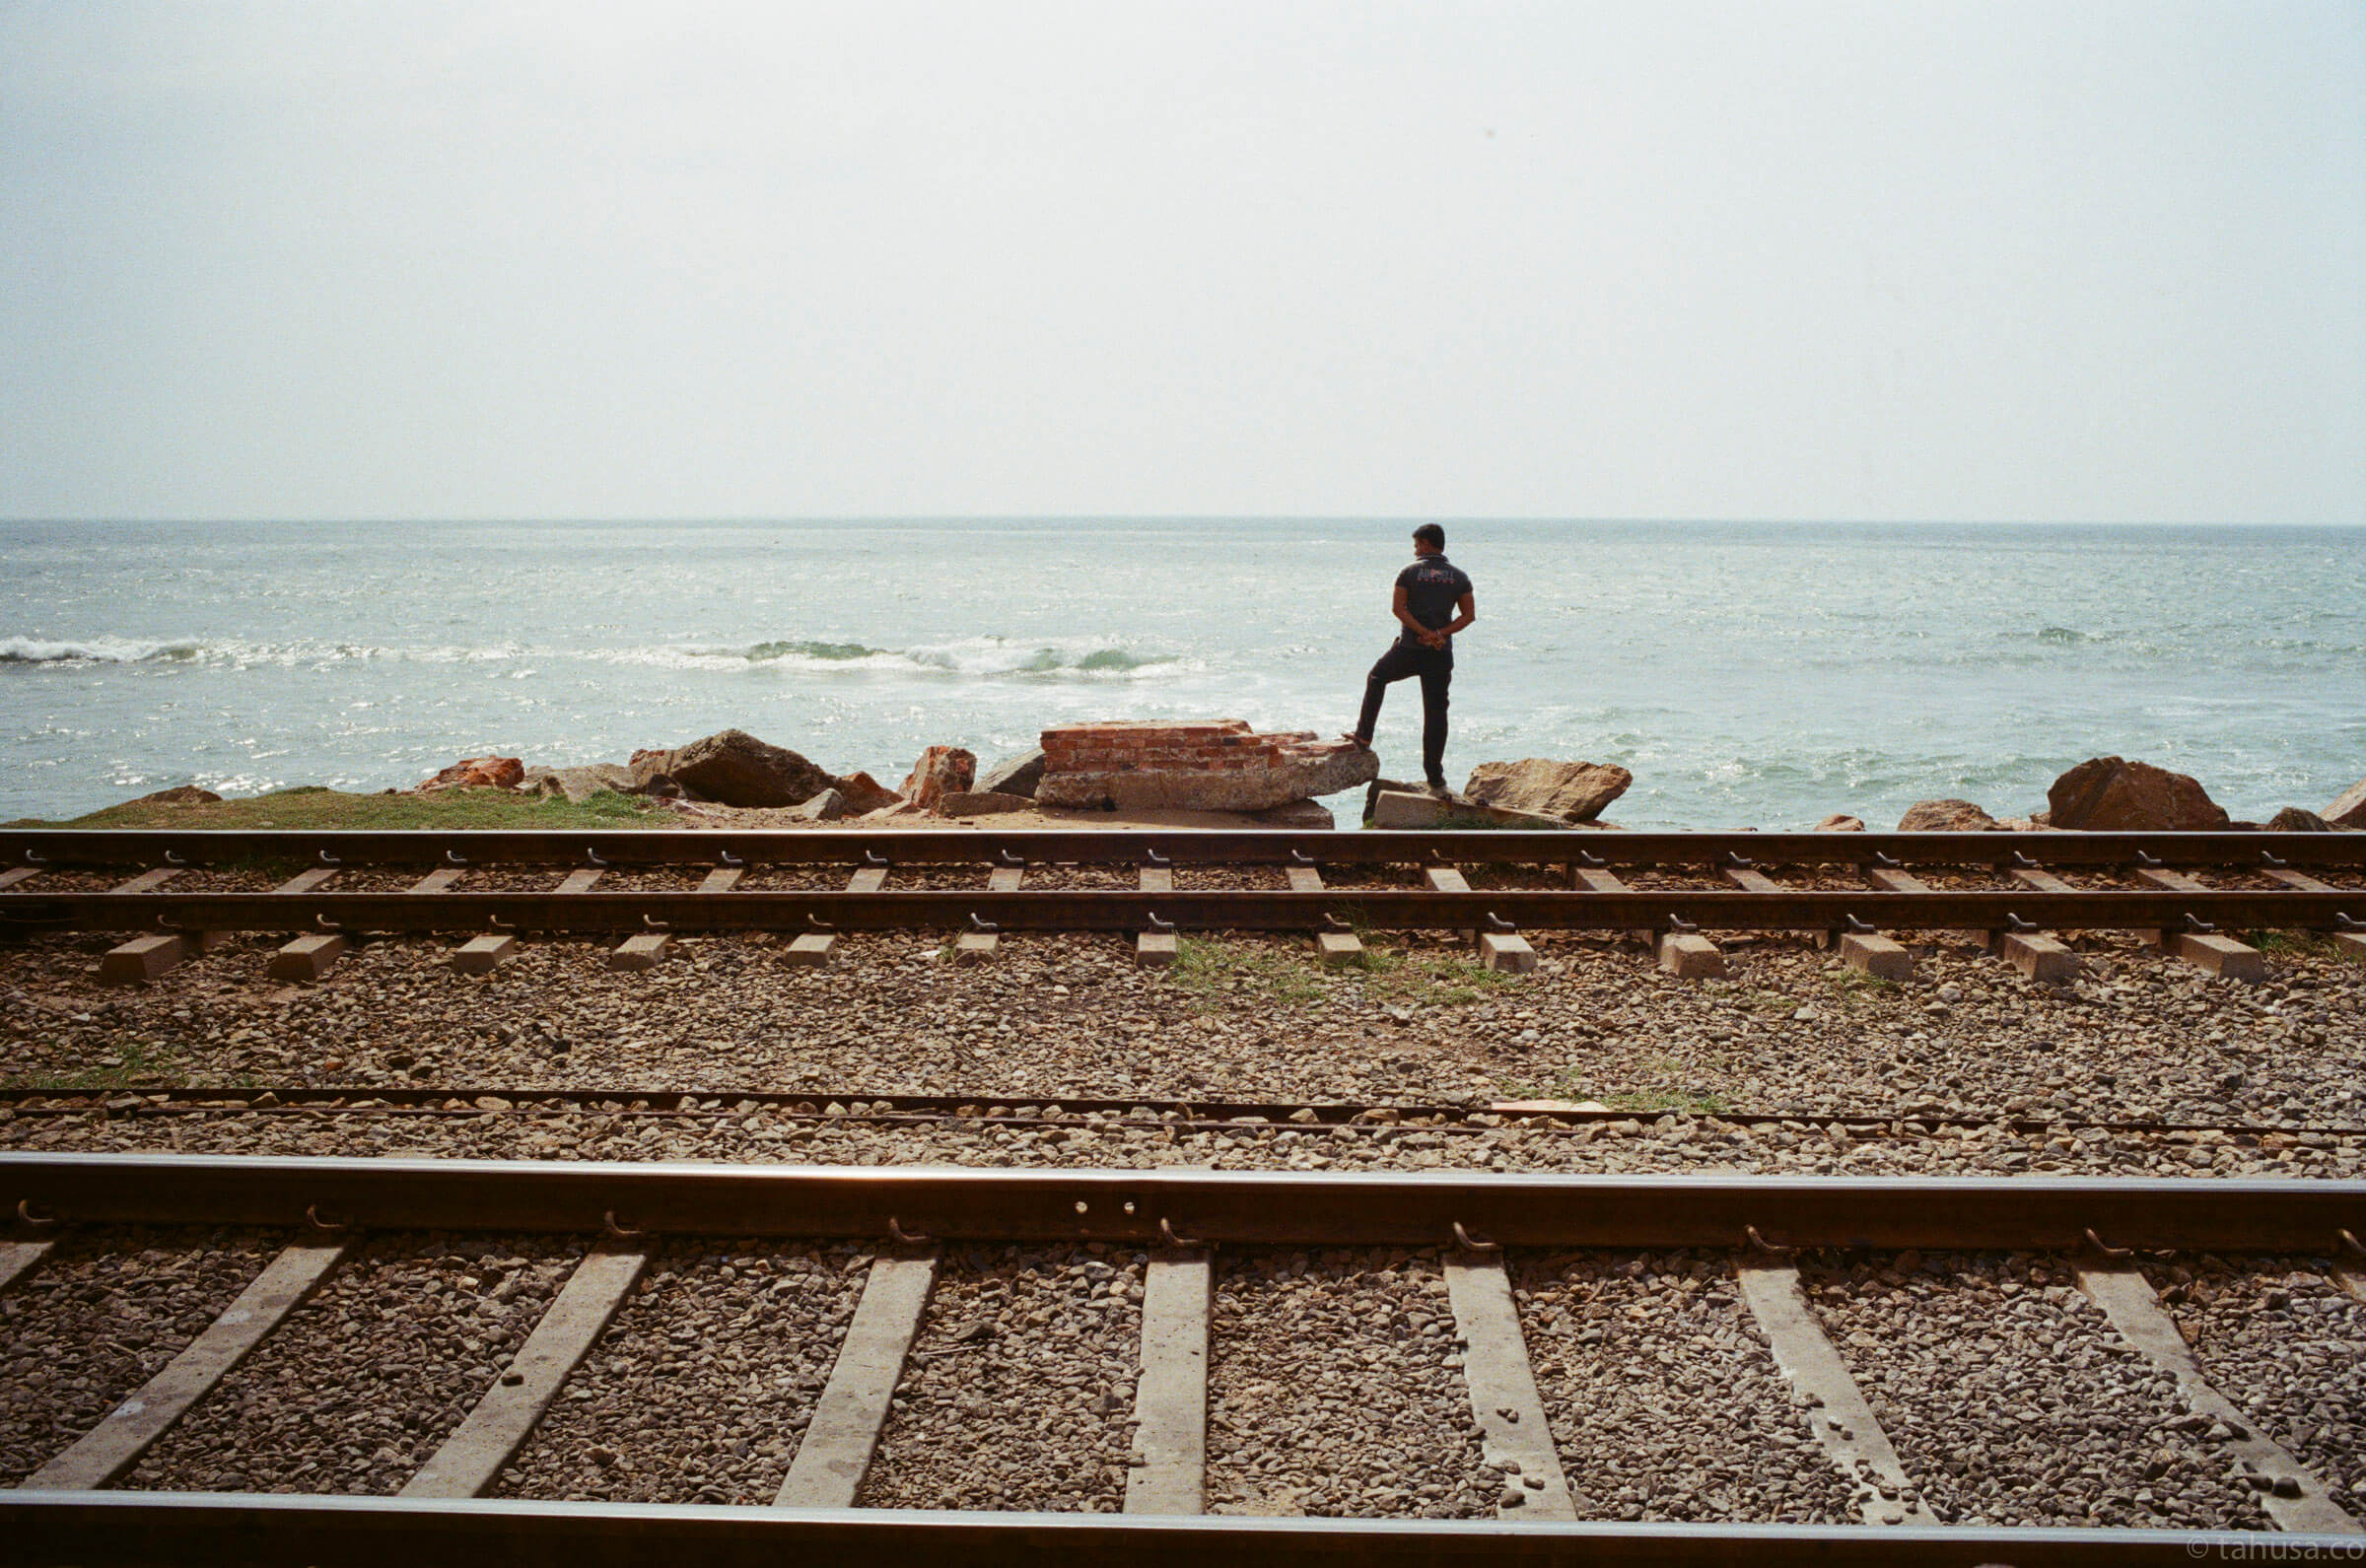 men-standing-on-train-track-documentary-in-sri-lanka-colombo-galle-face-green-local-life-kodak-supergold-400-iso400-Leica-summilux-35mm-f1.4-FLE-ASPH